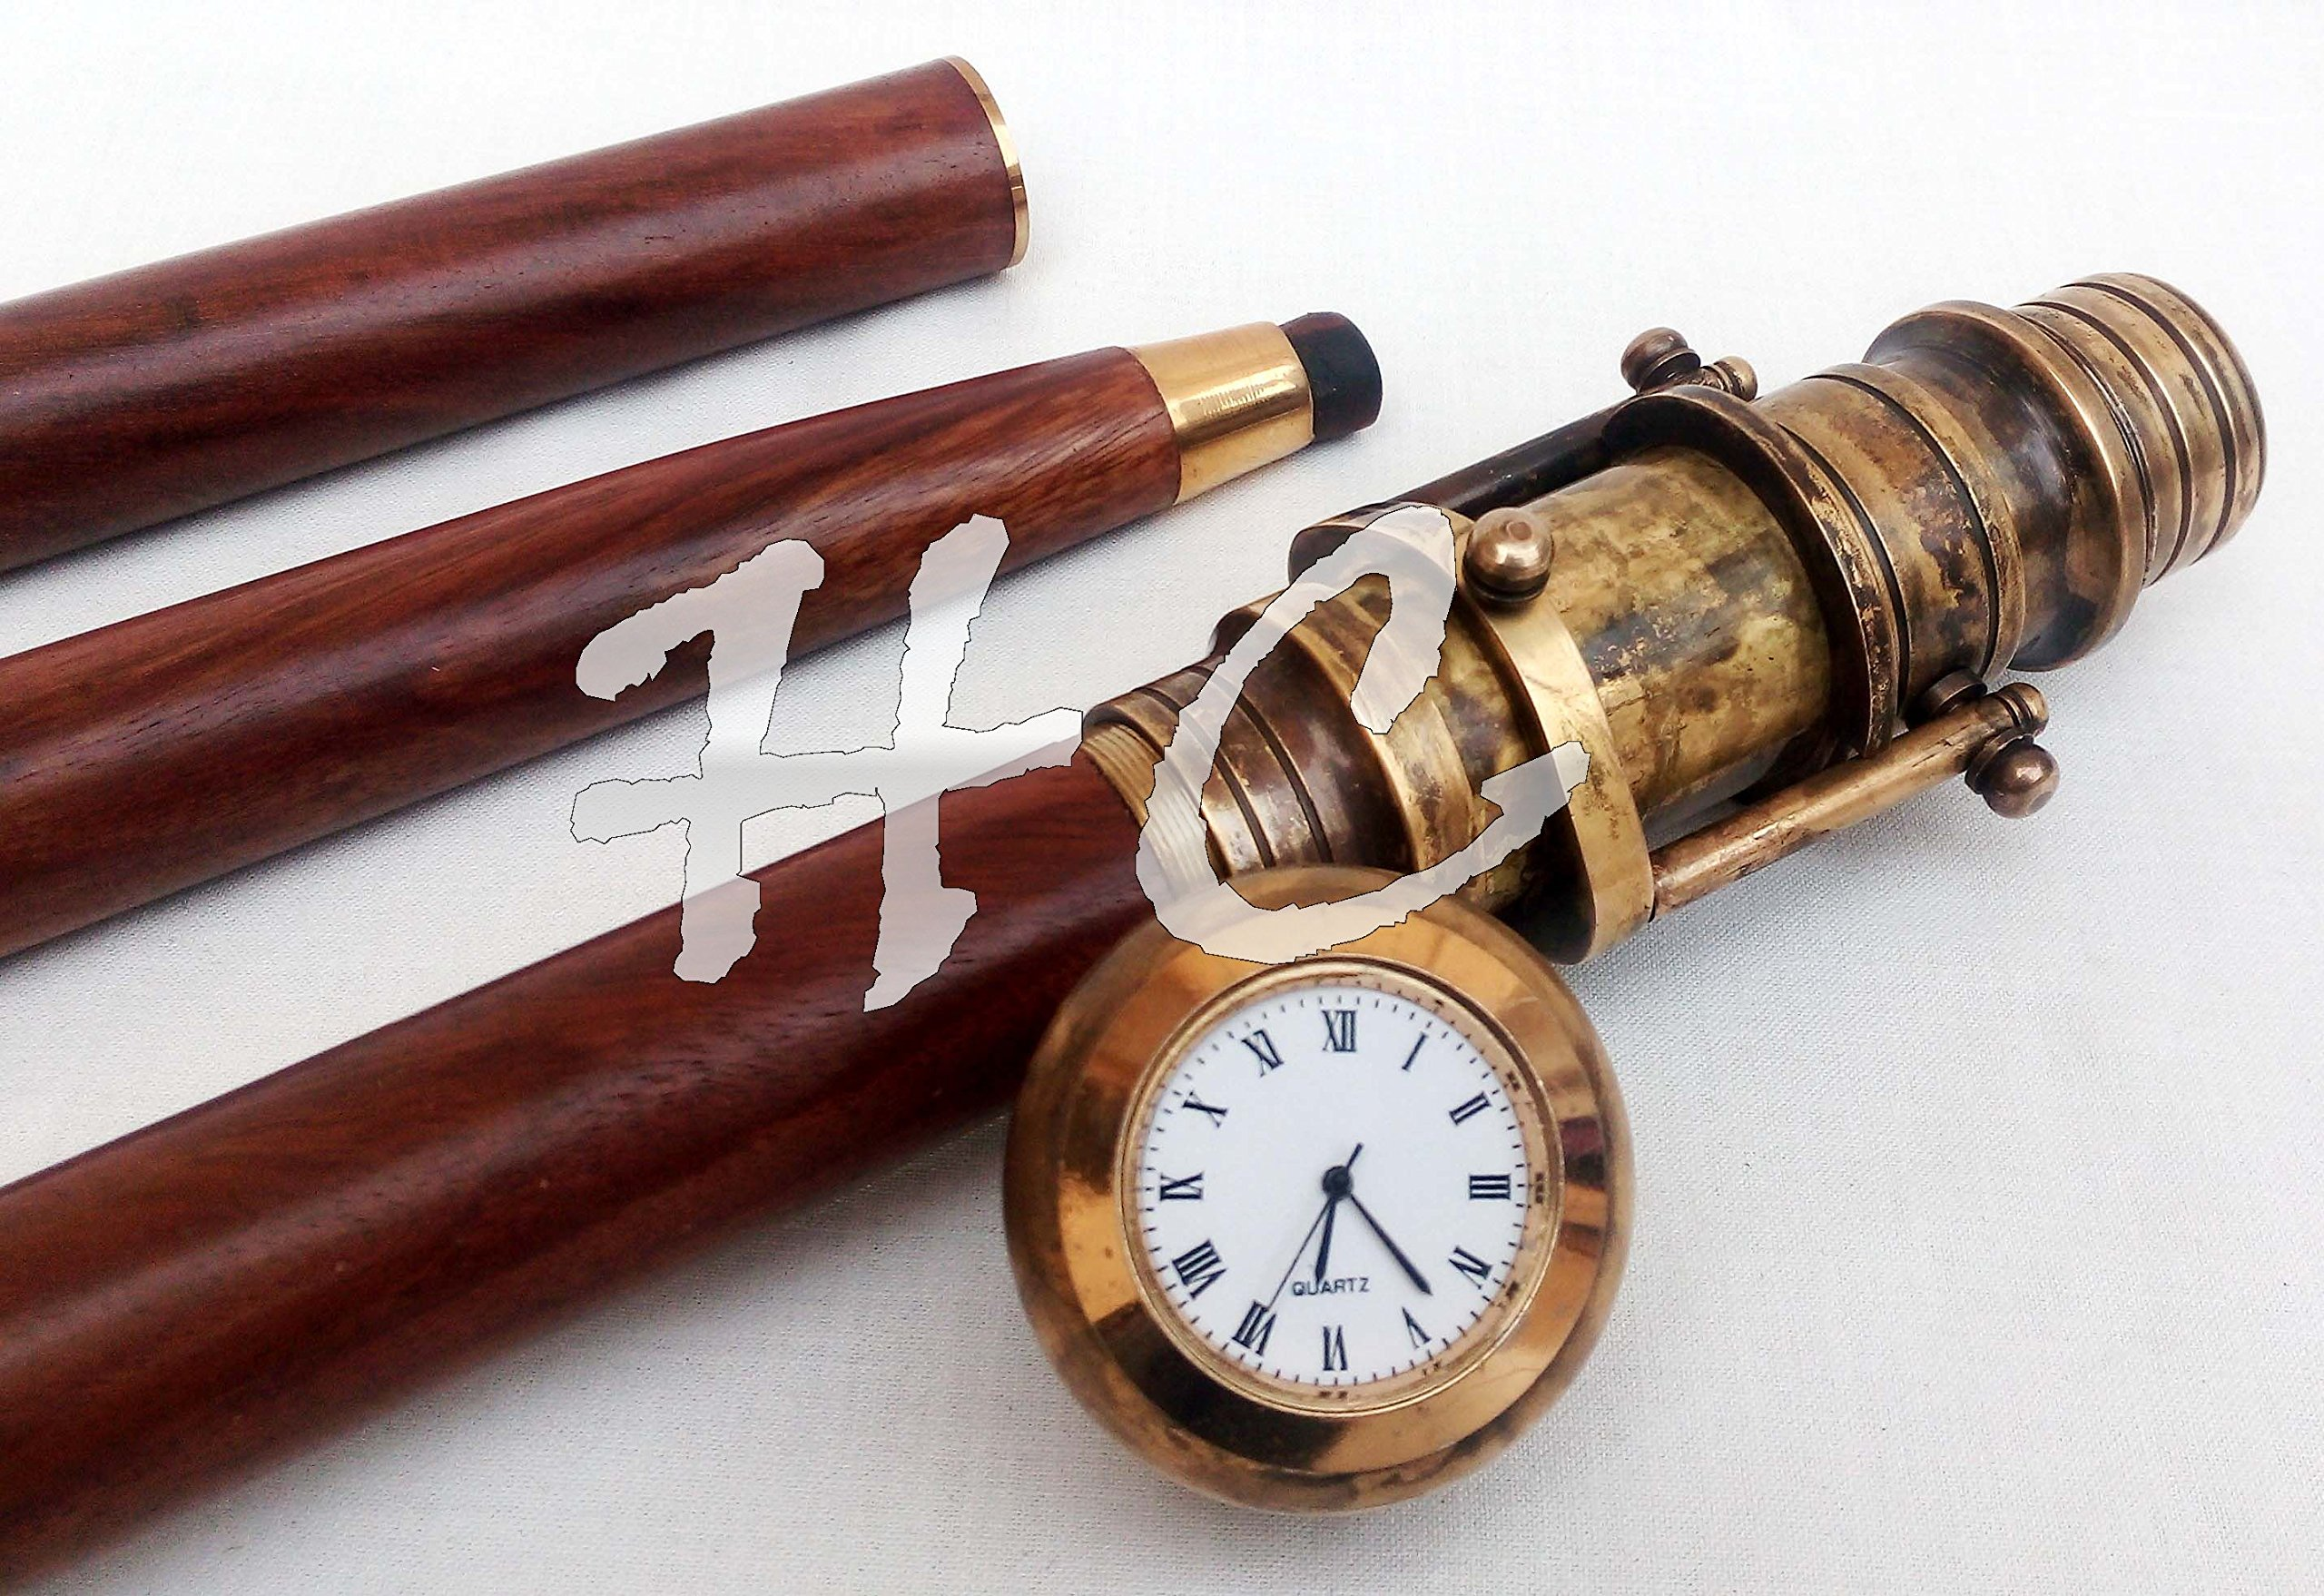 Hanzlacollection Vintage Clock Top Wooden Walking Stick with Hidden Spy Antique Brass Telescope by Hanzlacollection